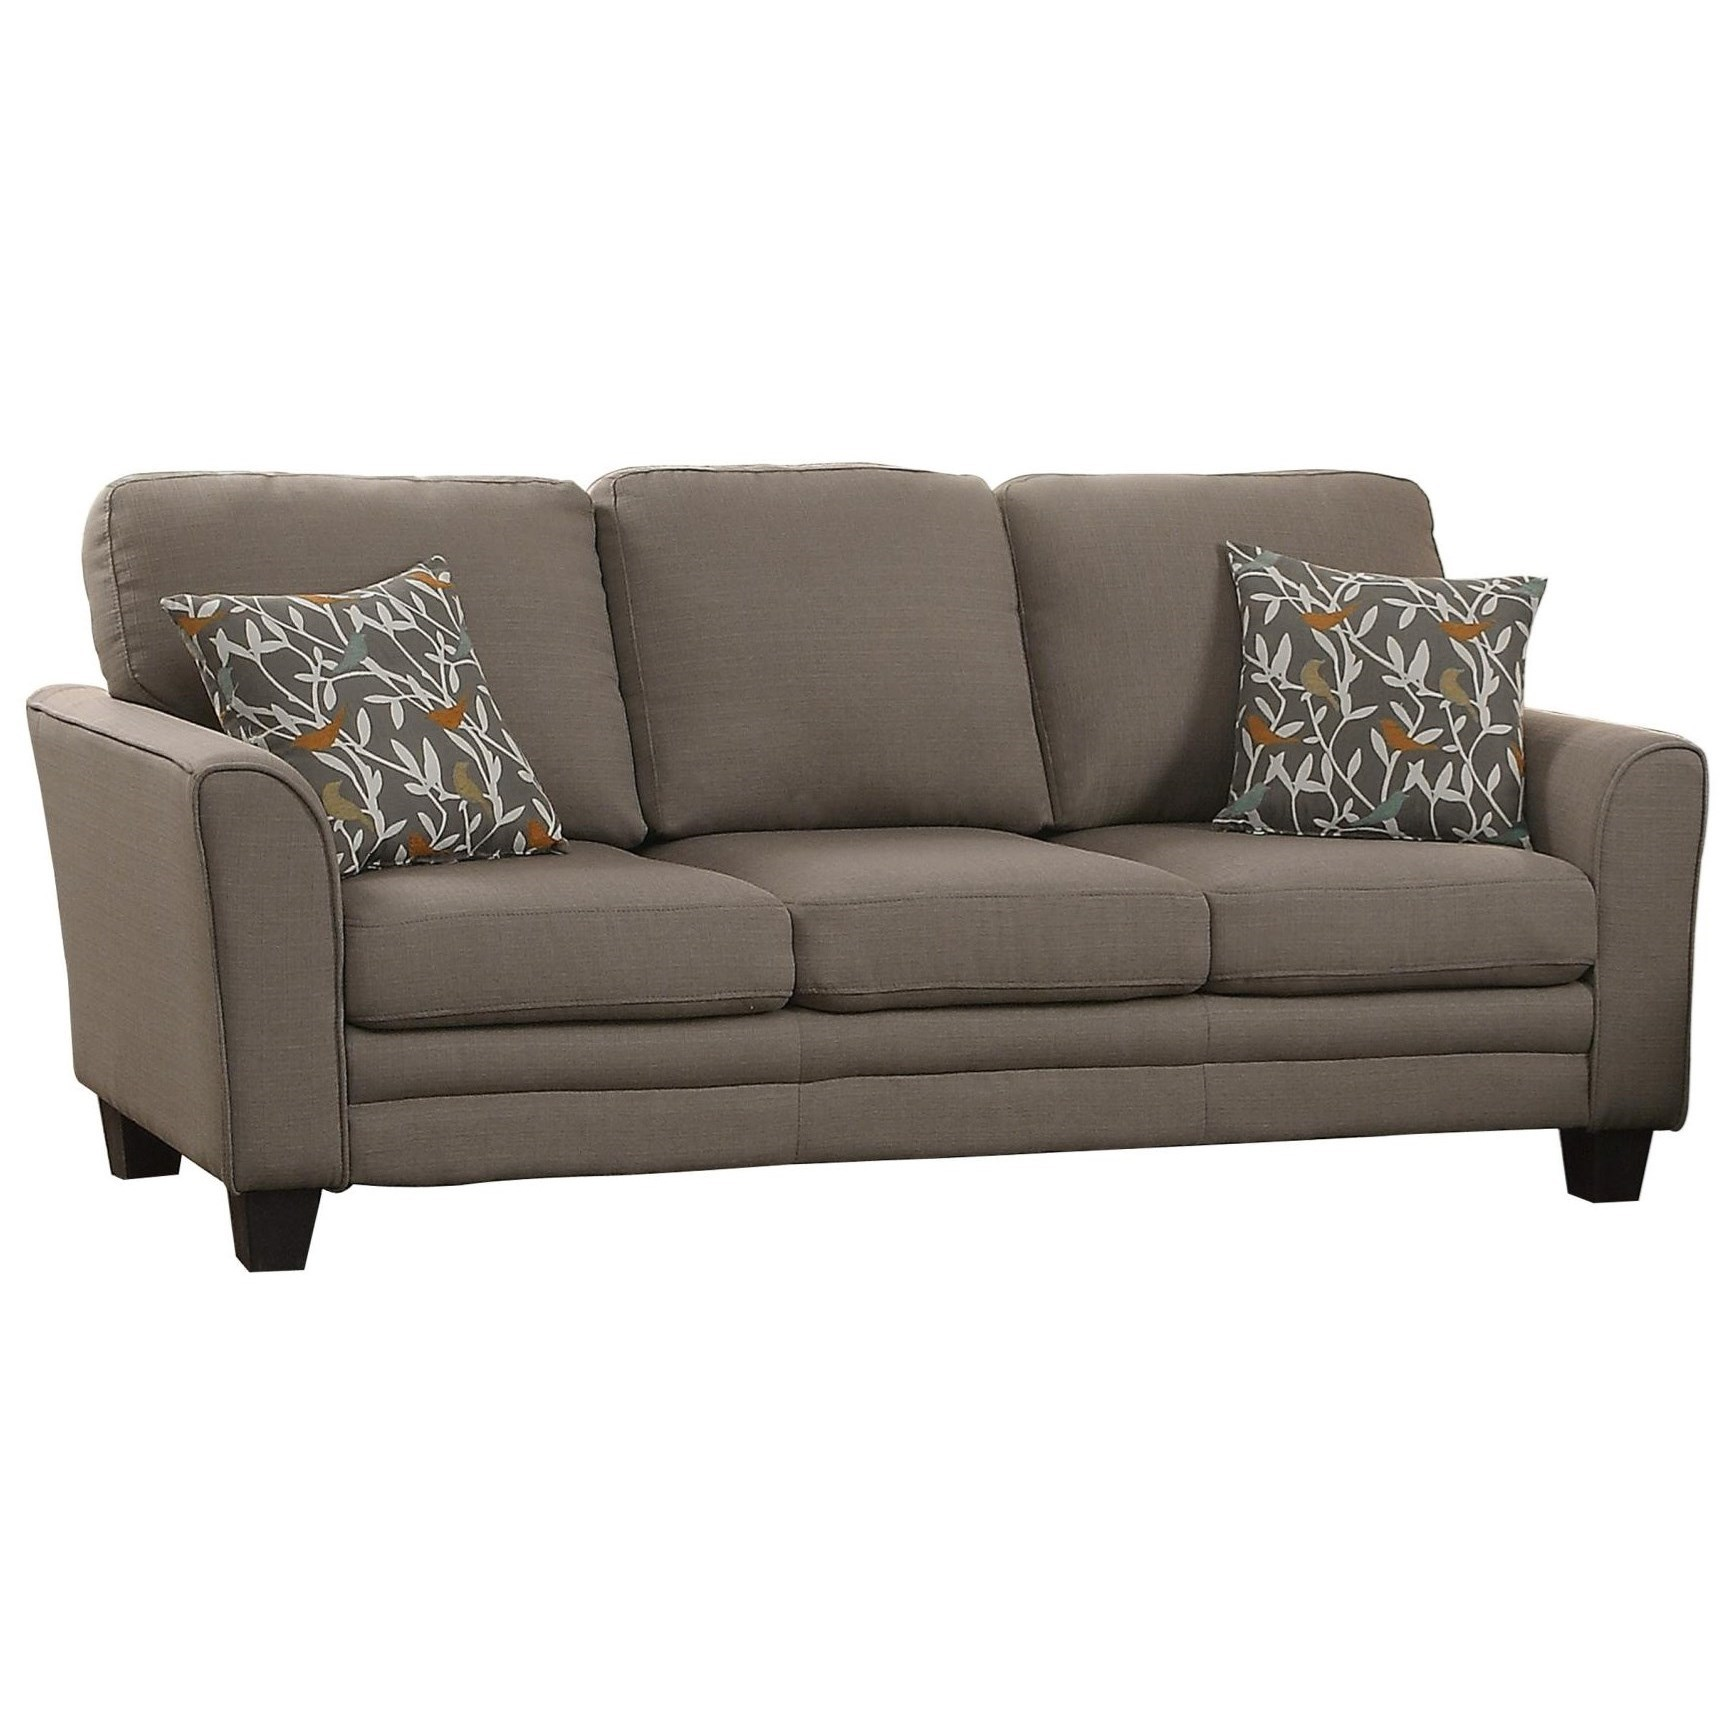 Adair Sofa by Homelegance at Simply Home by Lindy's